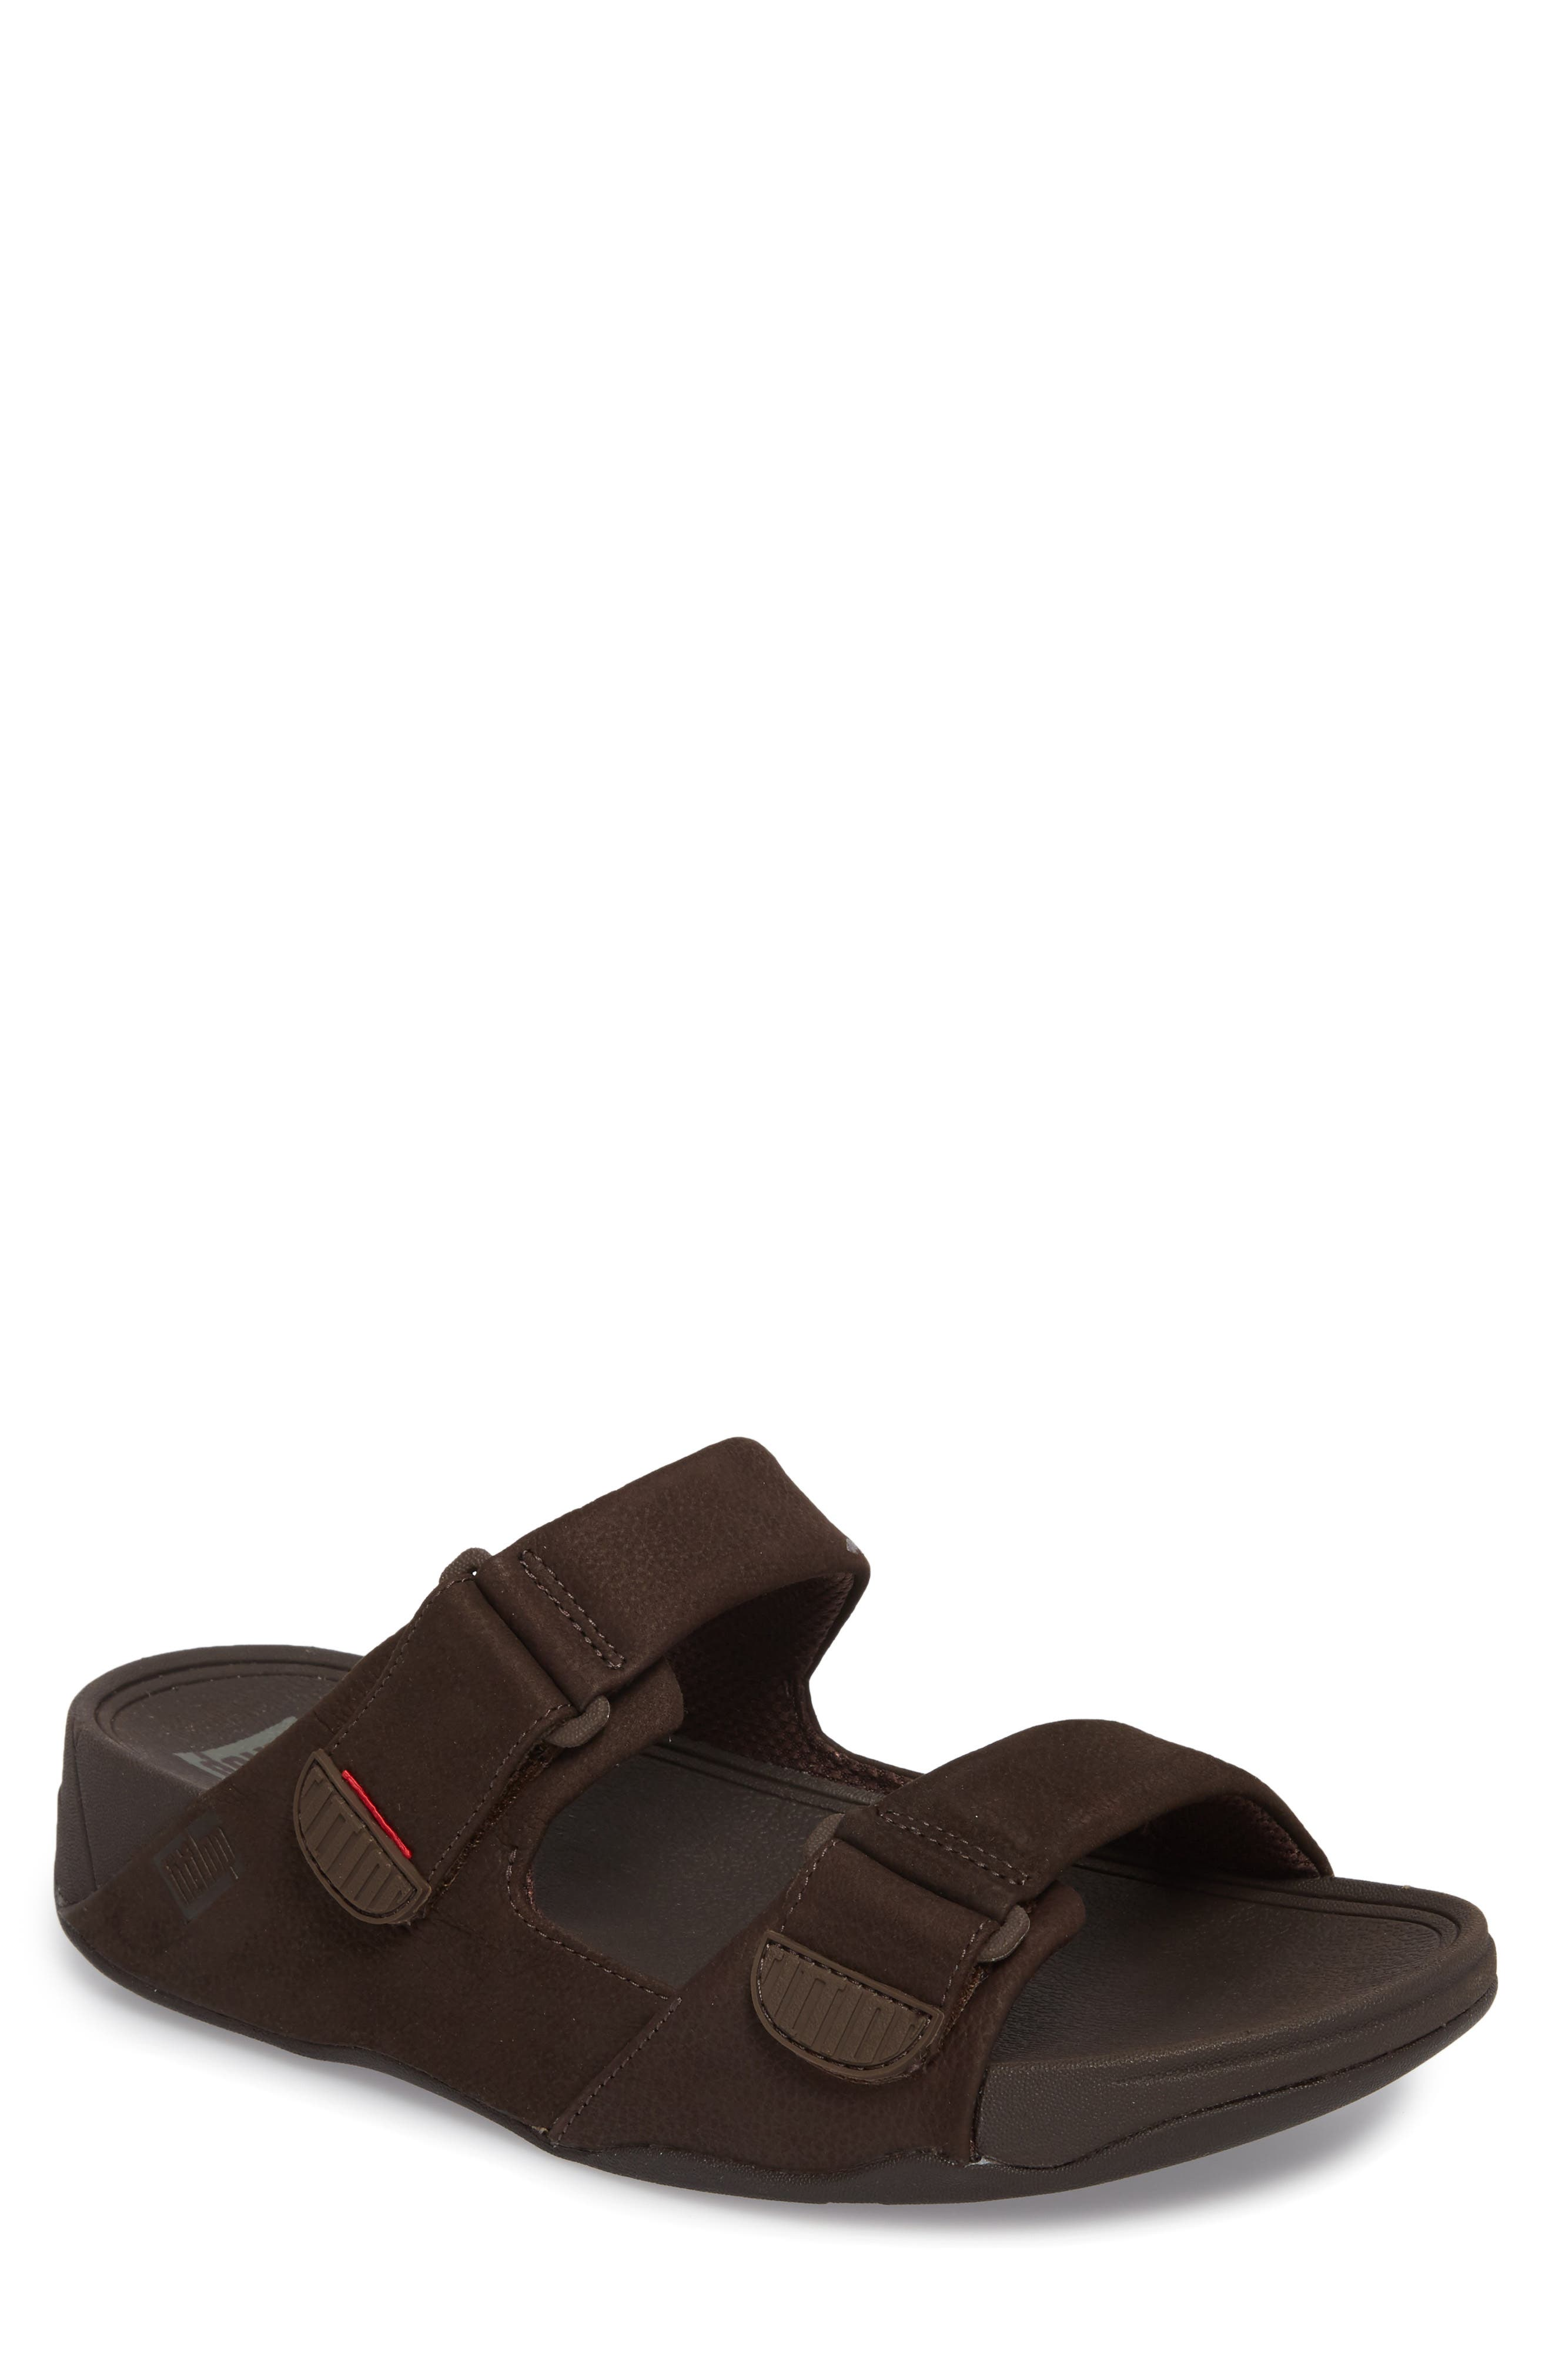 Gogh Sport Slide Sandal,                             Main thumbnail 1, color,                             Chocolate Brown